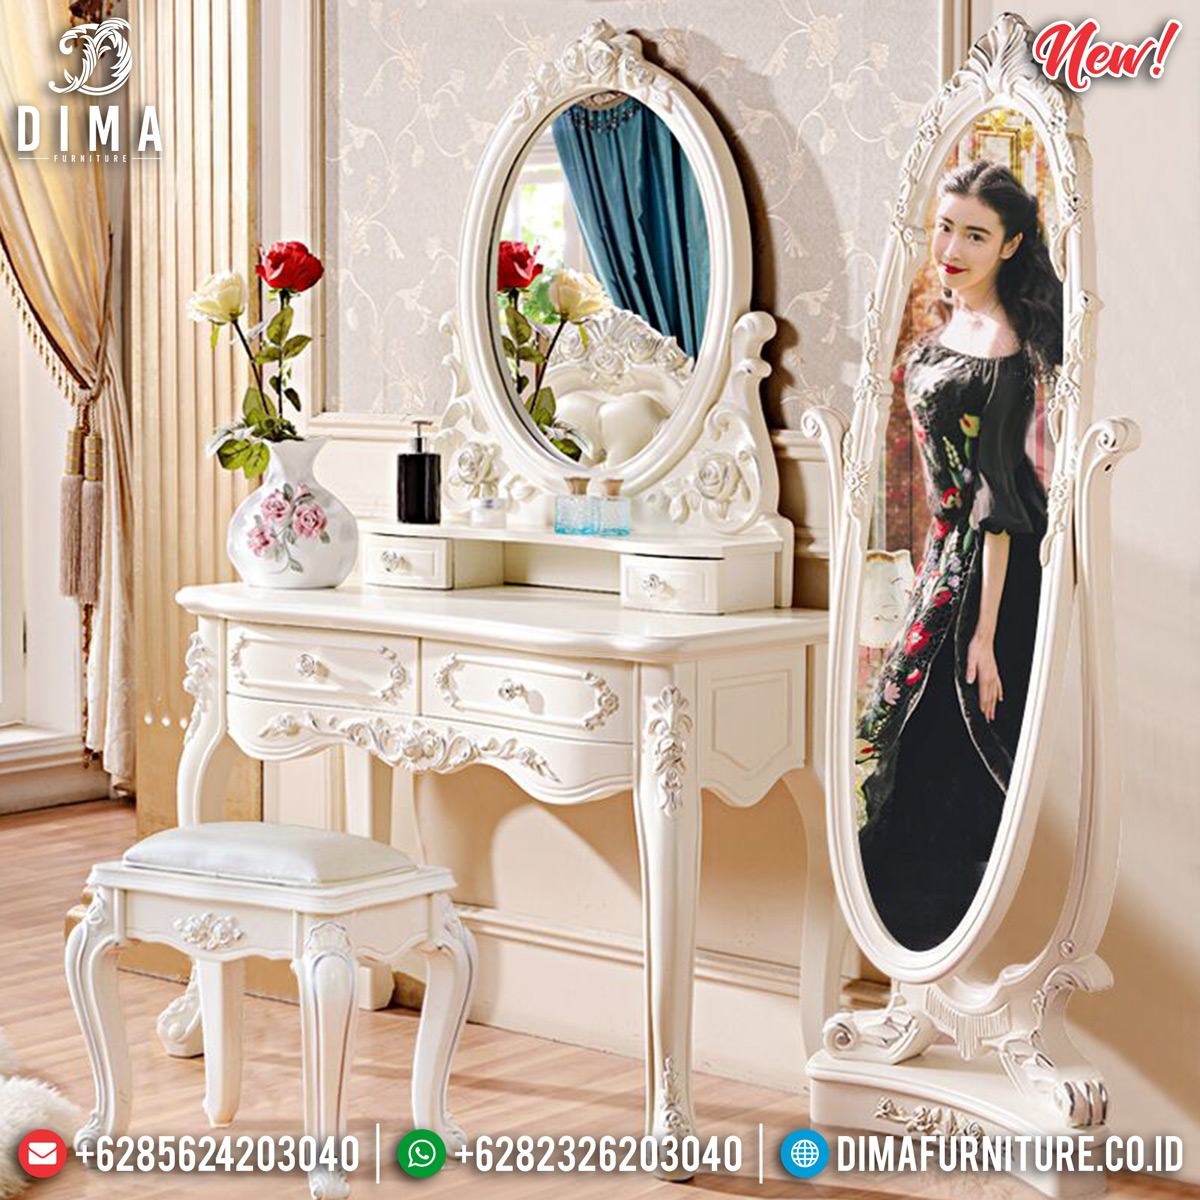 Jual Meja Rias Mewah Versailles Unique Design Luxury Carving MMJ-0780